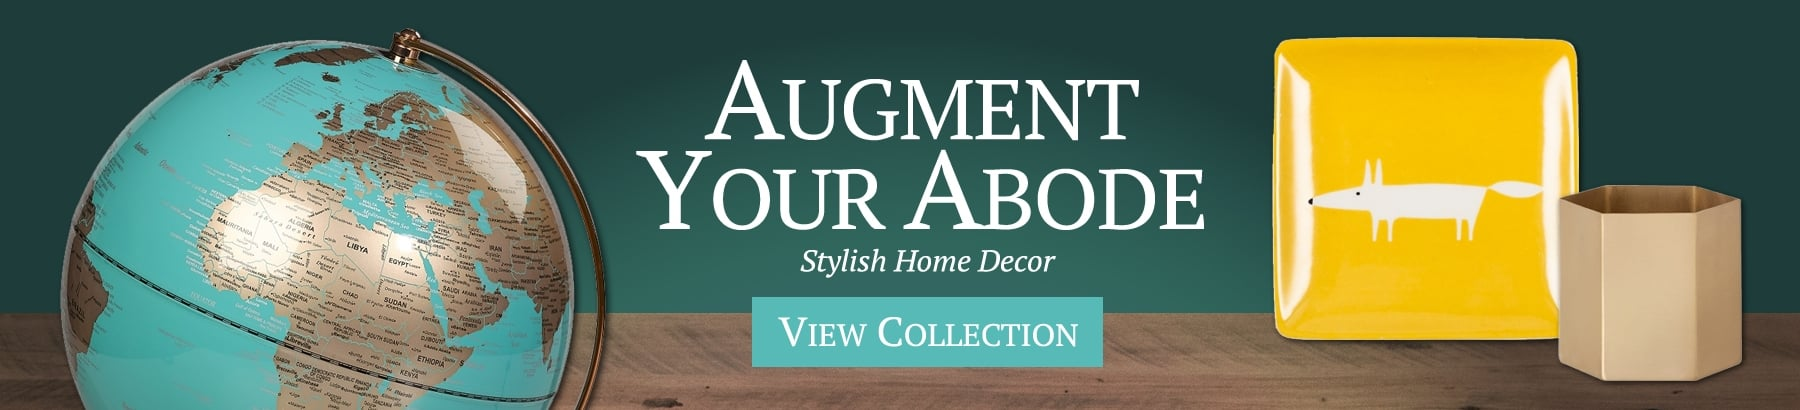 Augment Your Abode